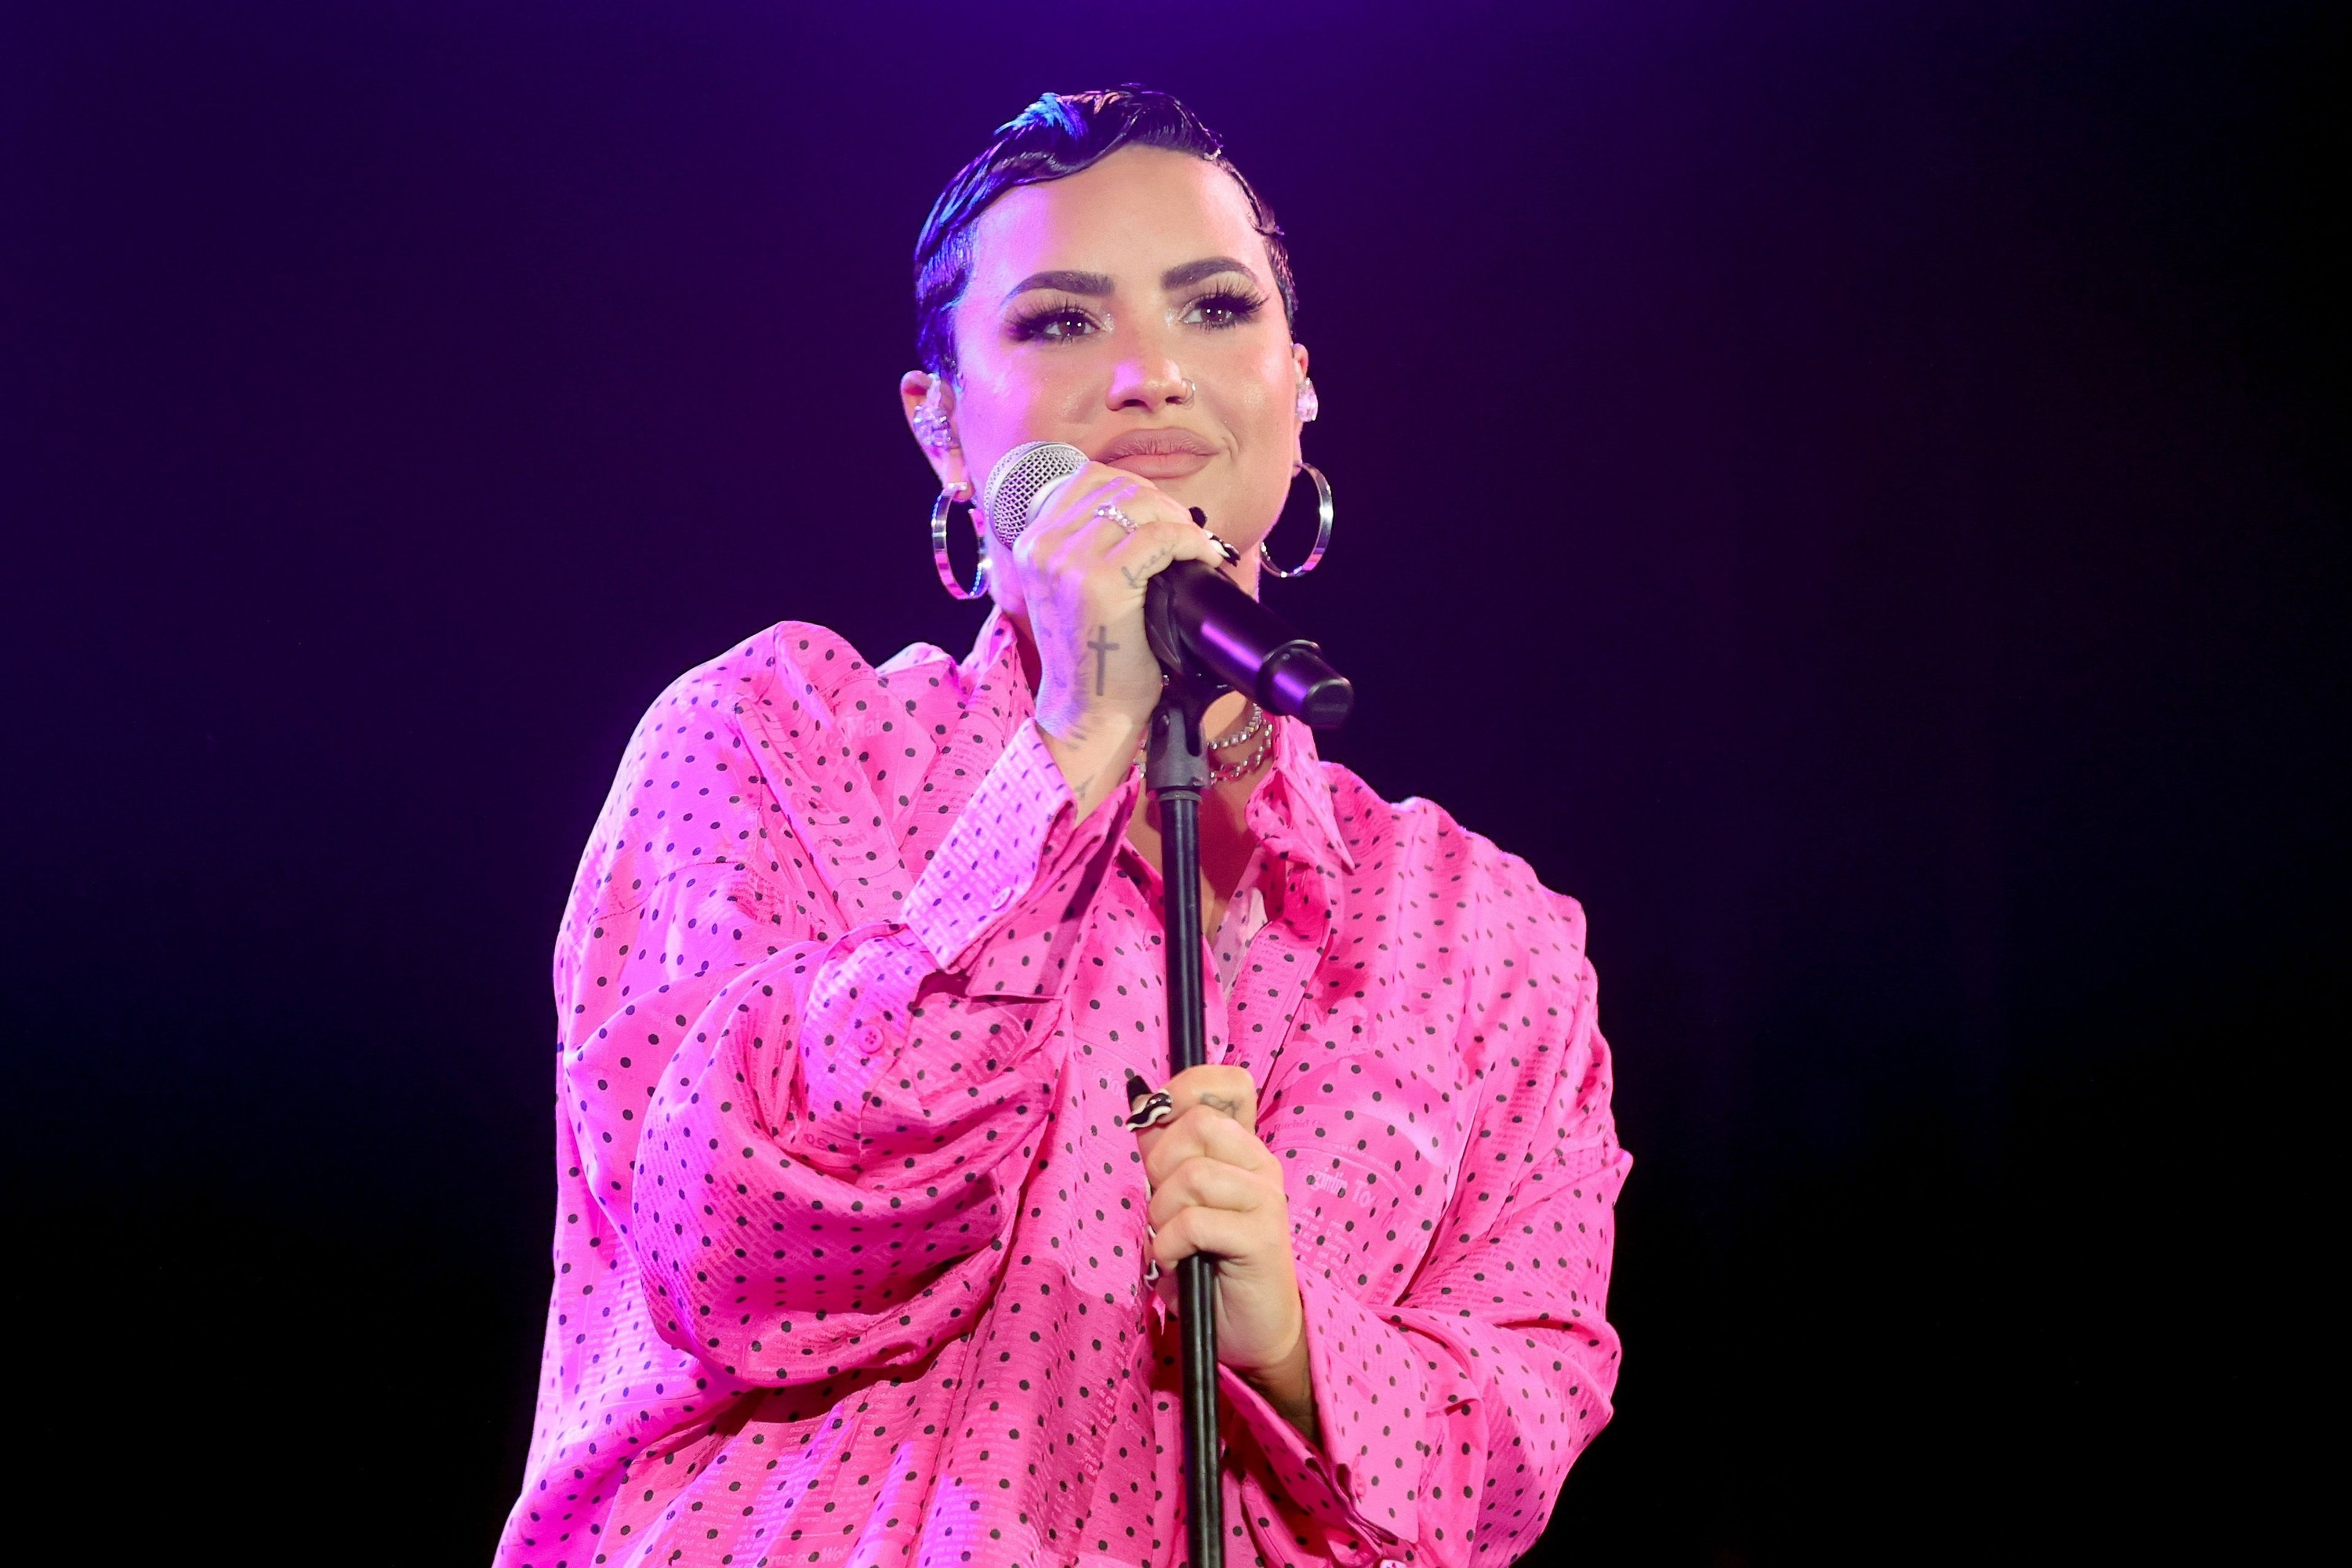 Demi performs on stage during a recent event